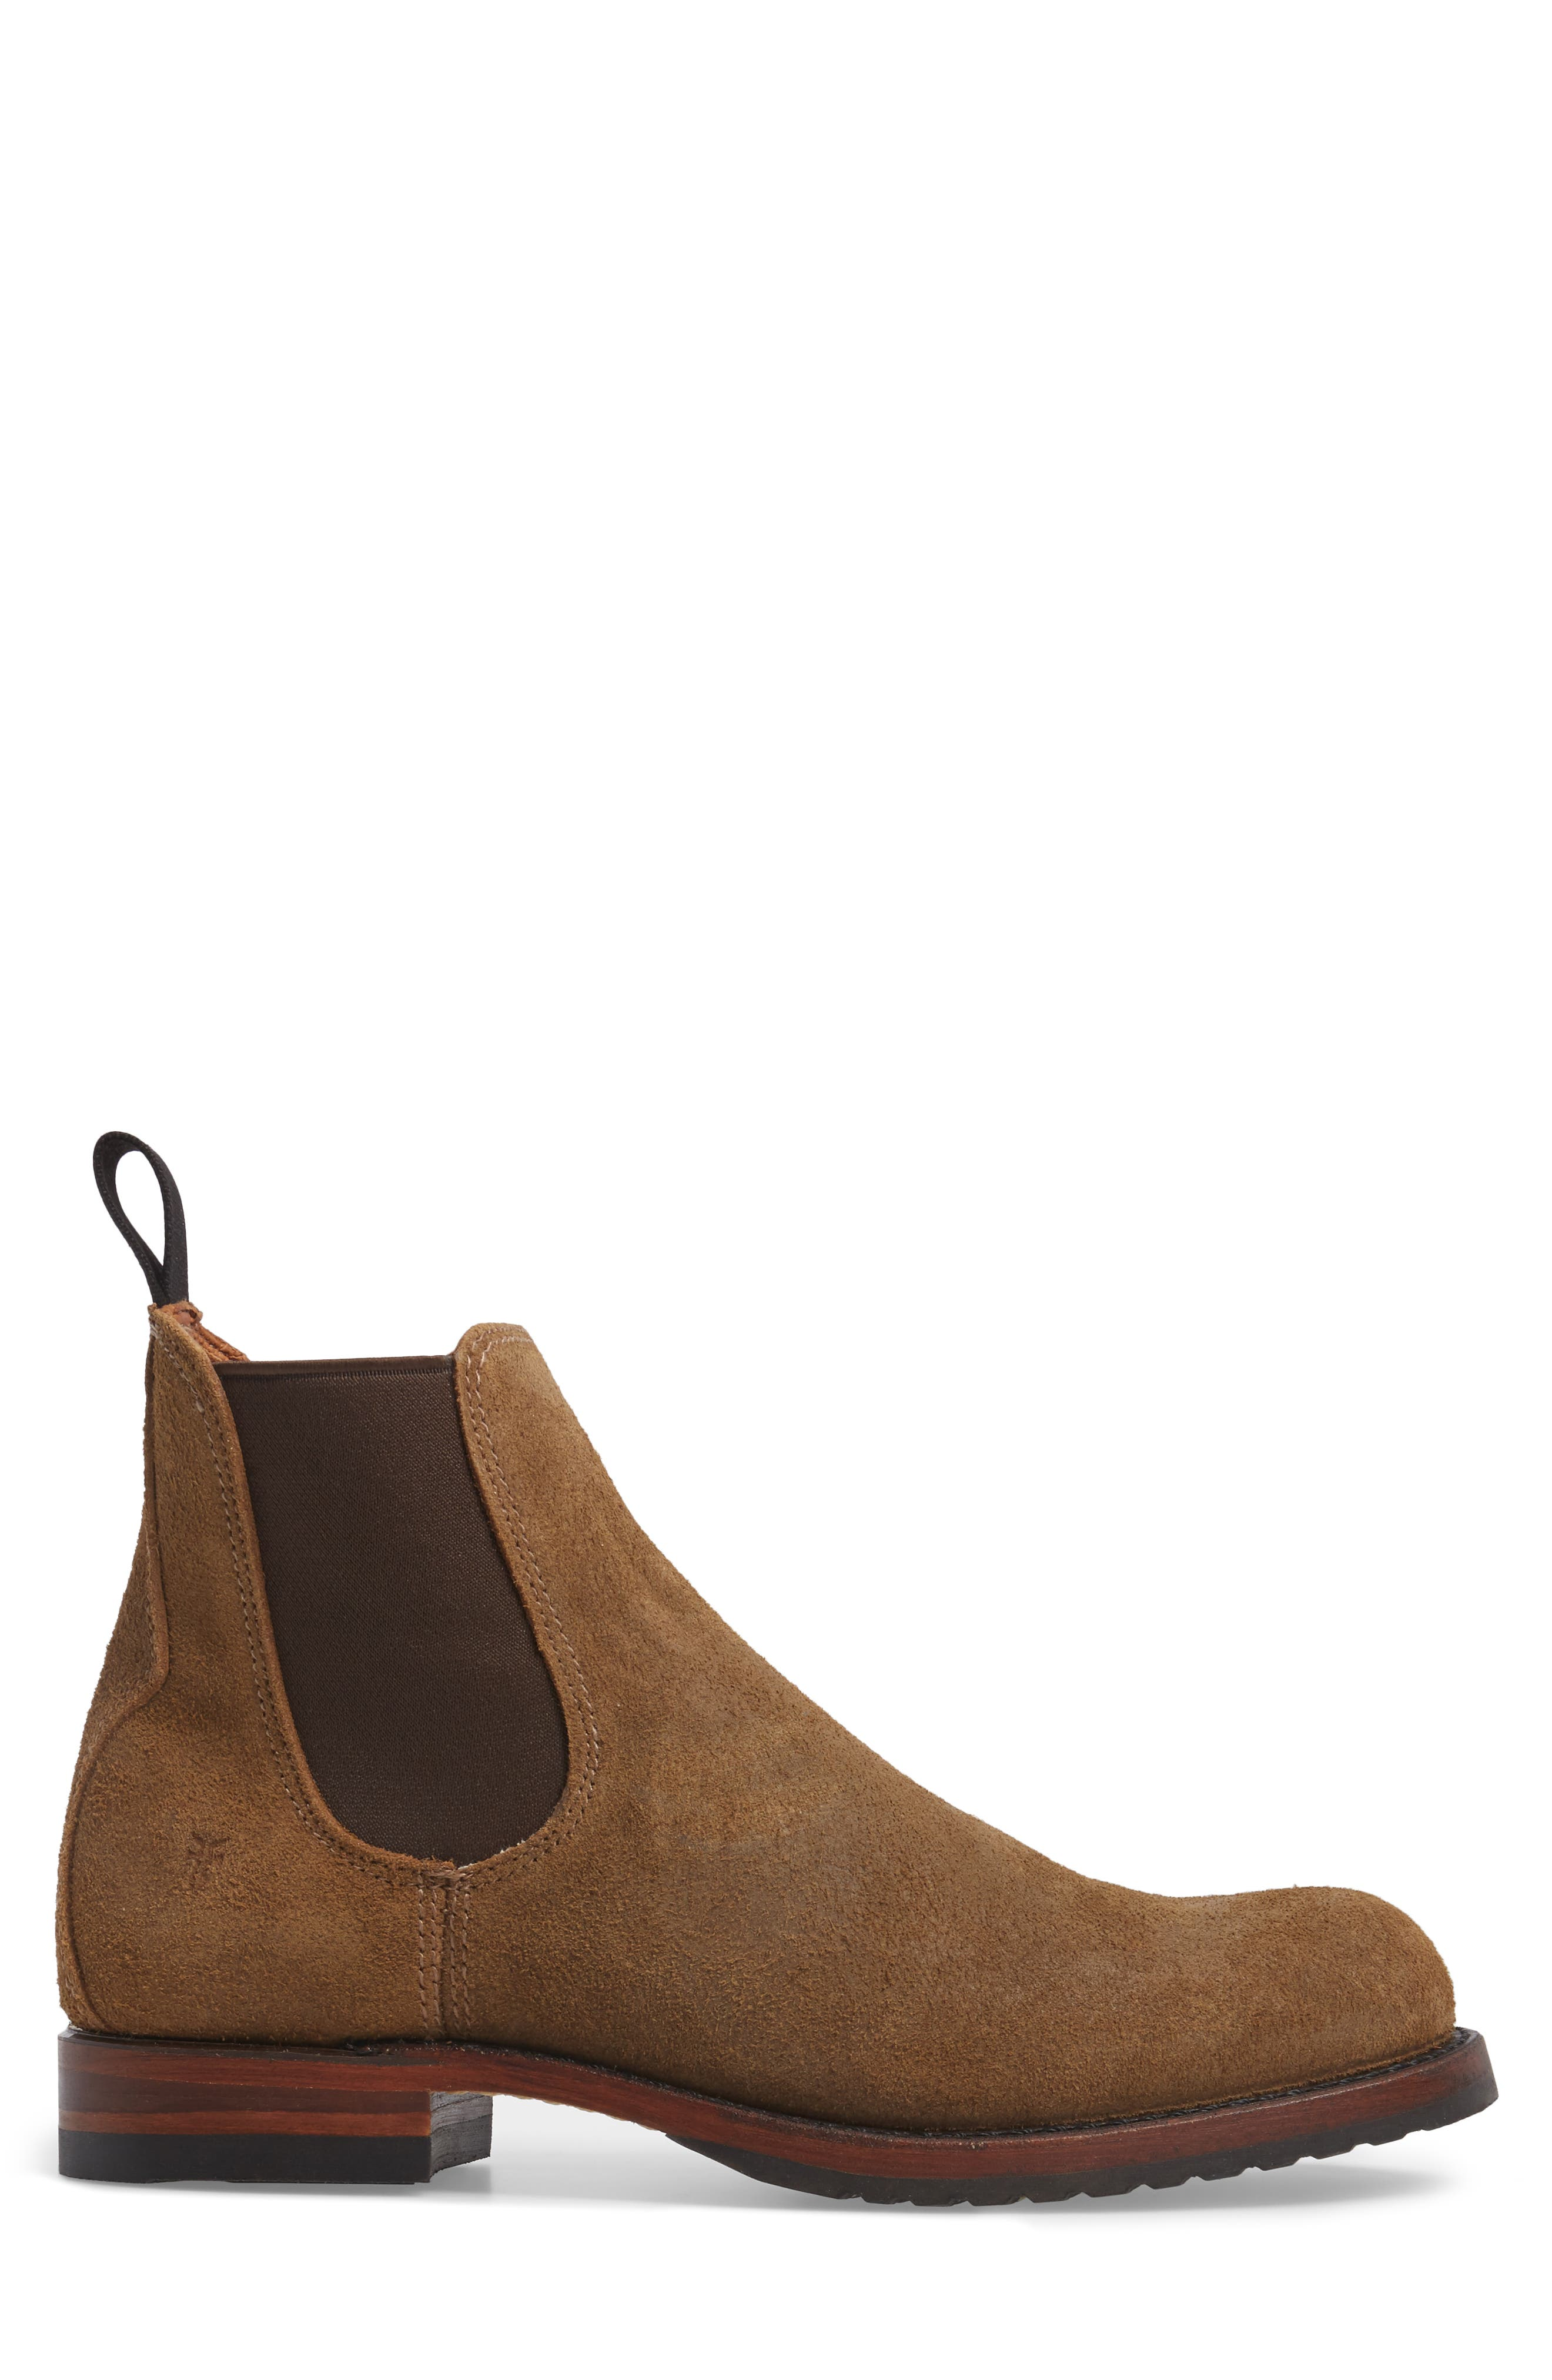 Logan Chelsea Boot,                             Alternate thumbnail 3, color,                             Chestnut Waxed Suede